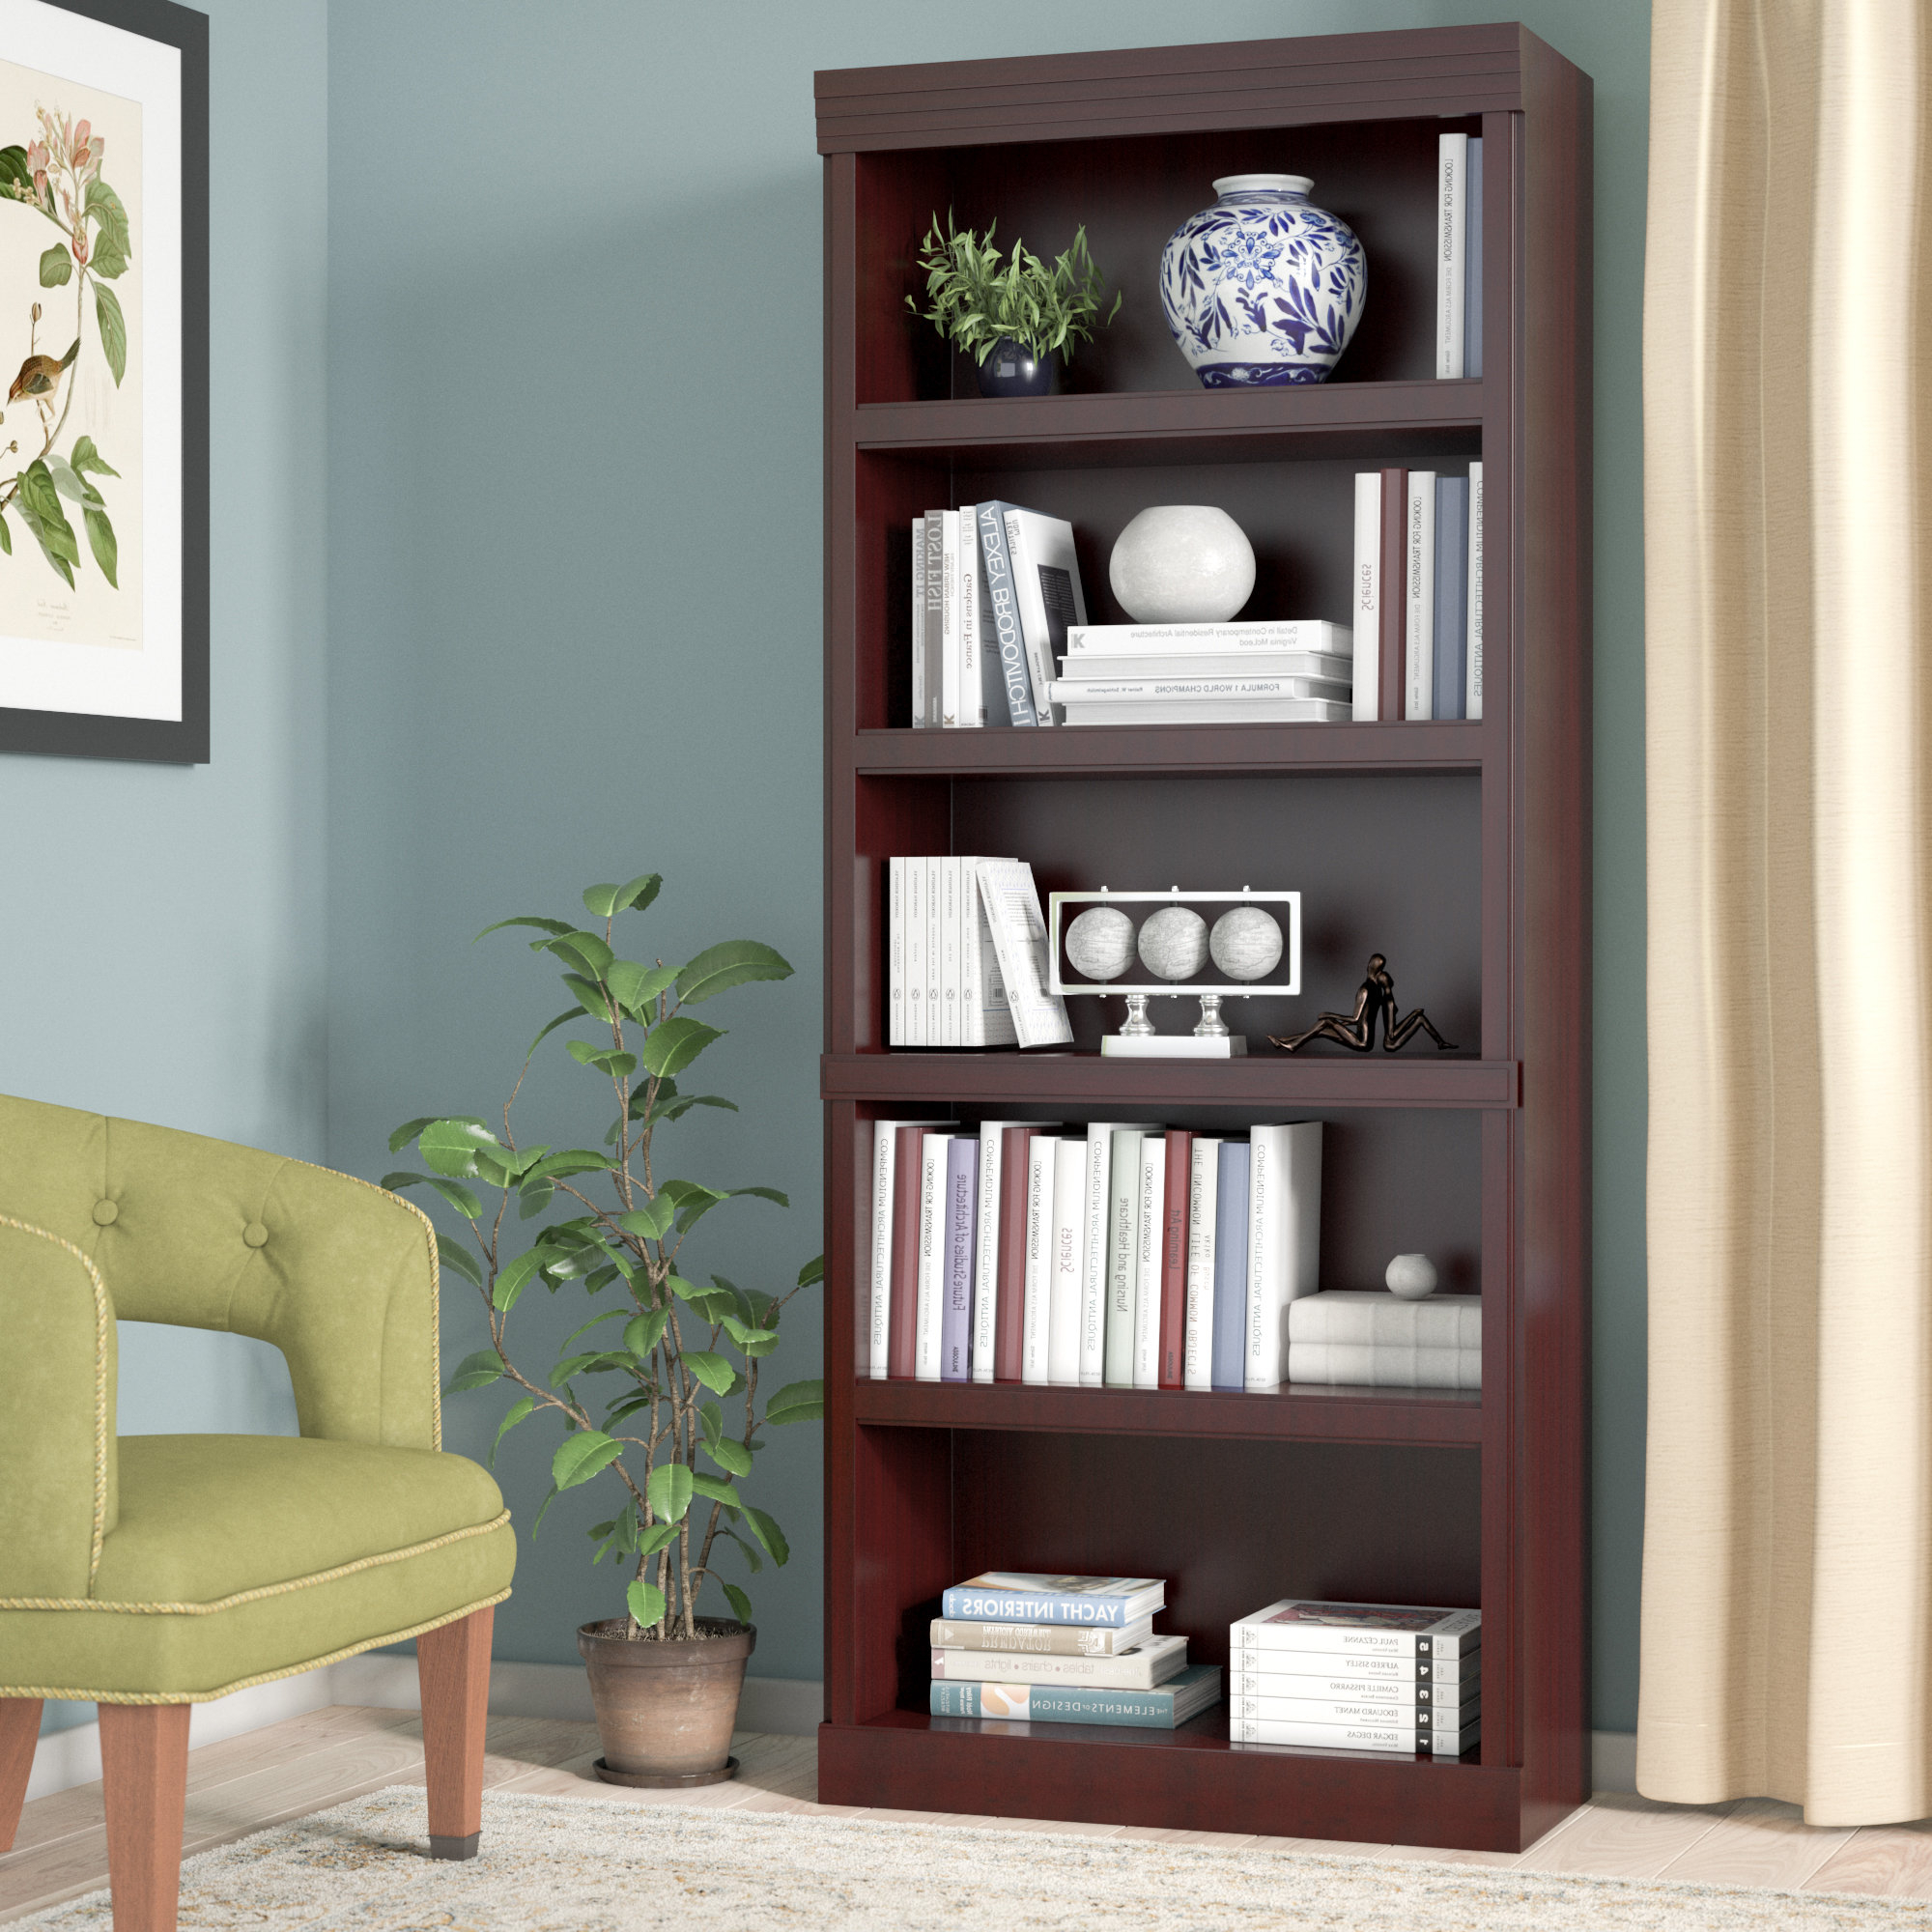 Widely Used Clintonville Standard Bookcase Within Kayli Standard Bookcases (View 15 of 20)